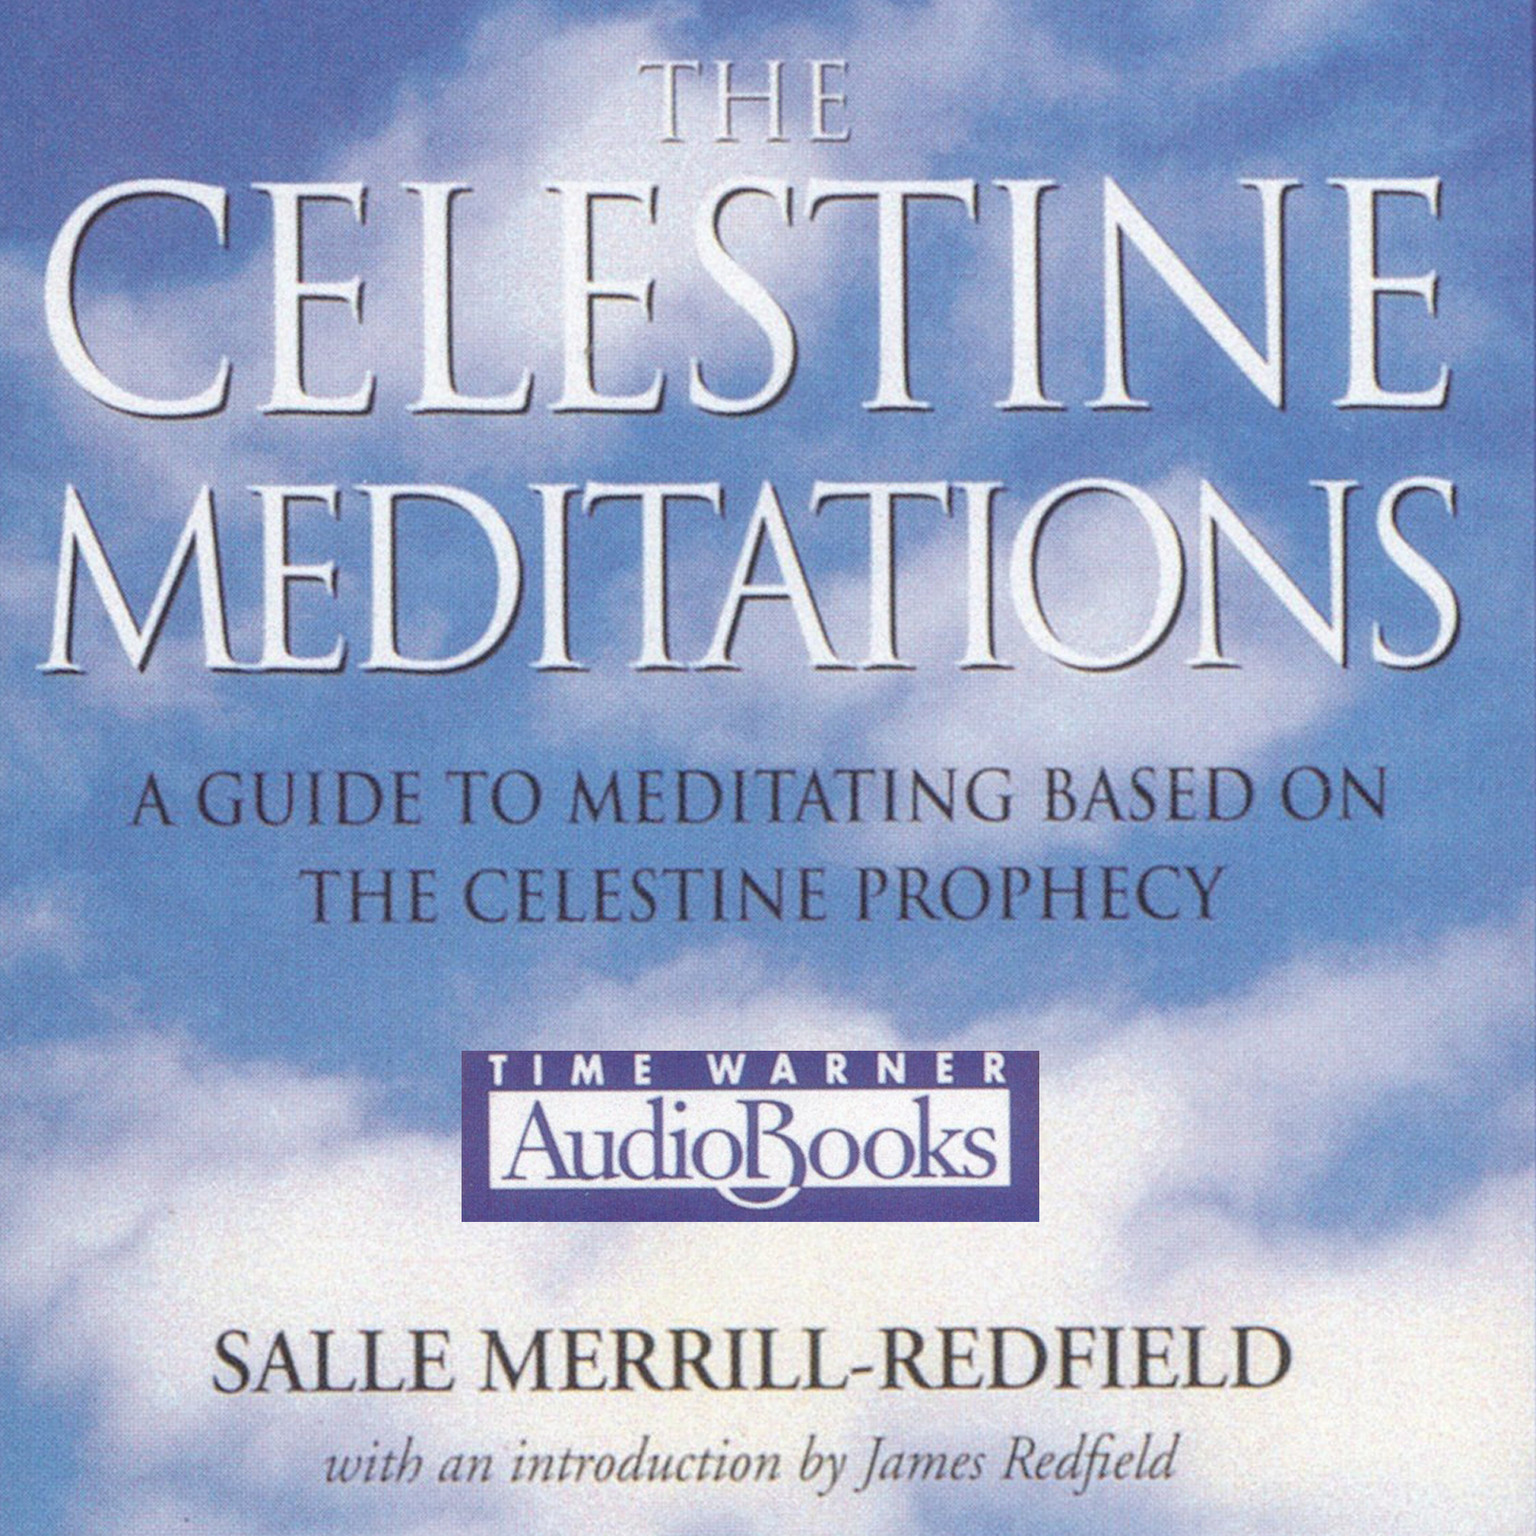 Printable The Celestine Meditations: A Guide to Meditation Based on The Celestine Prophecy Audiobook Cover Art